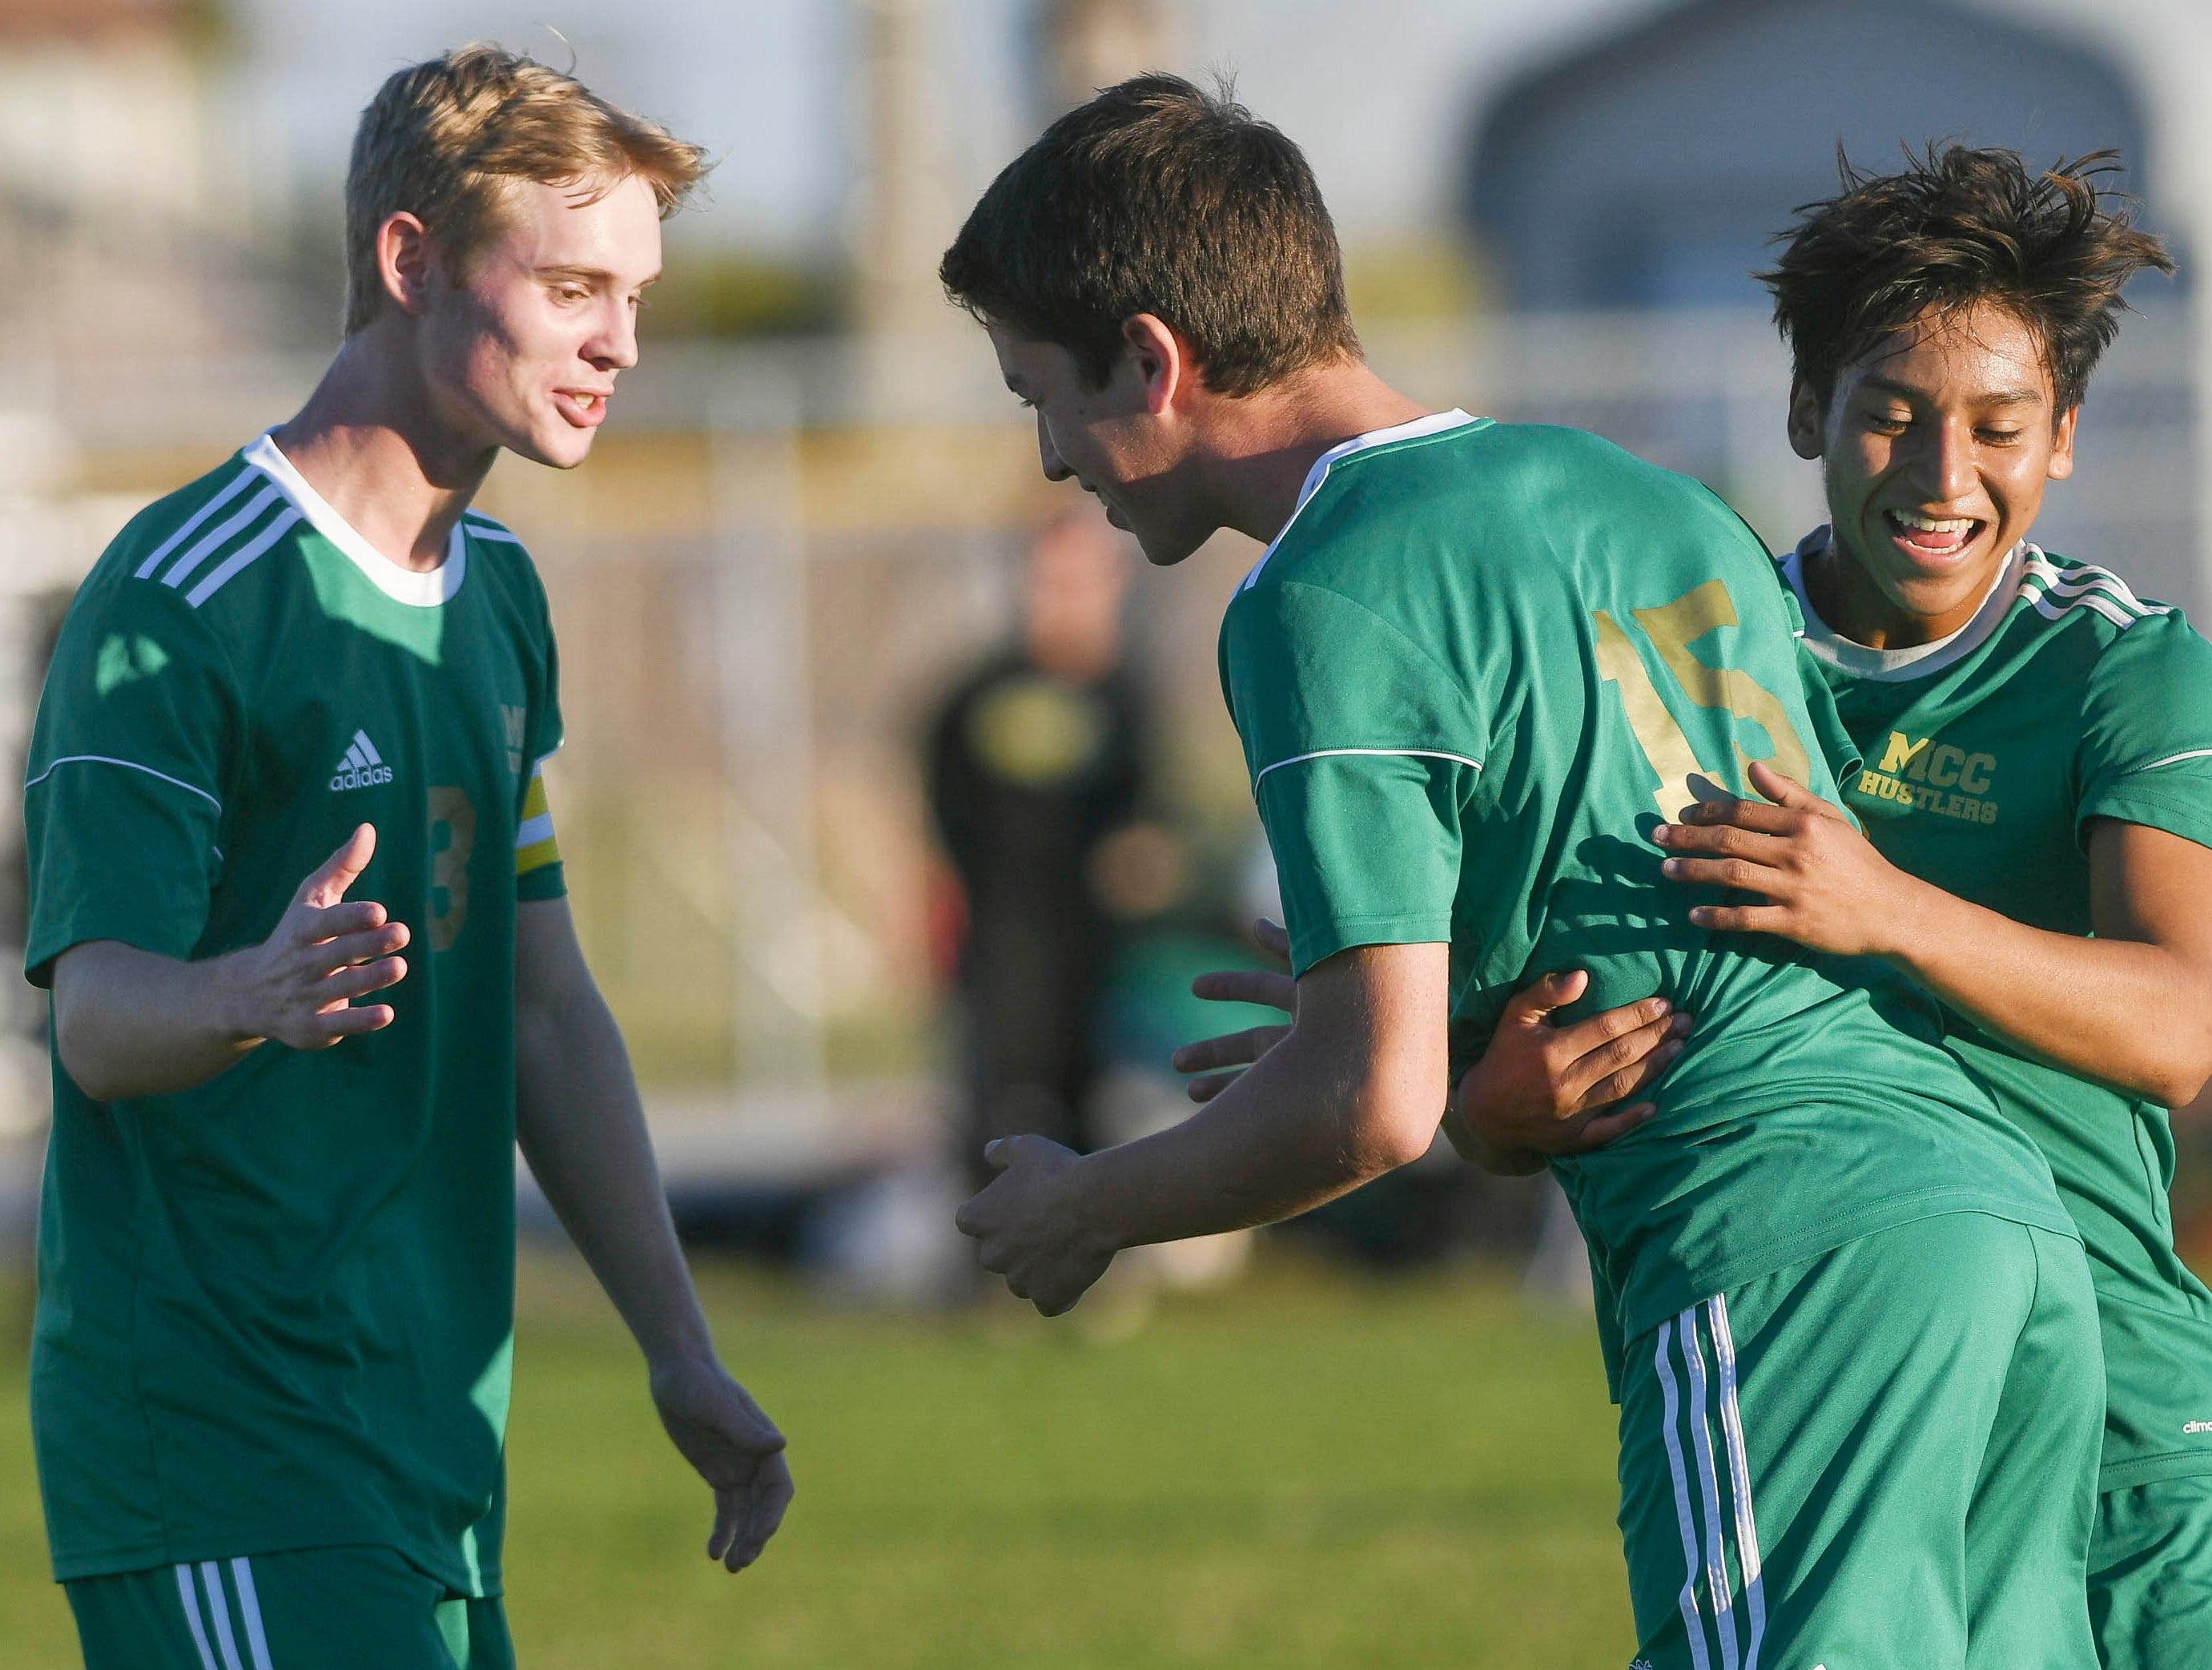 Ed Nekrasov of Melbourne Central Catholic is congratulated by teammates Tyler Keller (left) and Junior Acuna (right) after scoring a goal in Tuesday's District 8, Class 2A semifinal against Space Coast at Cocoa Beach High.